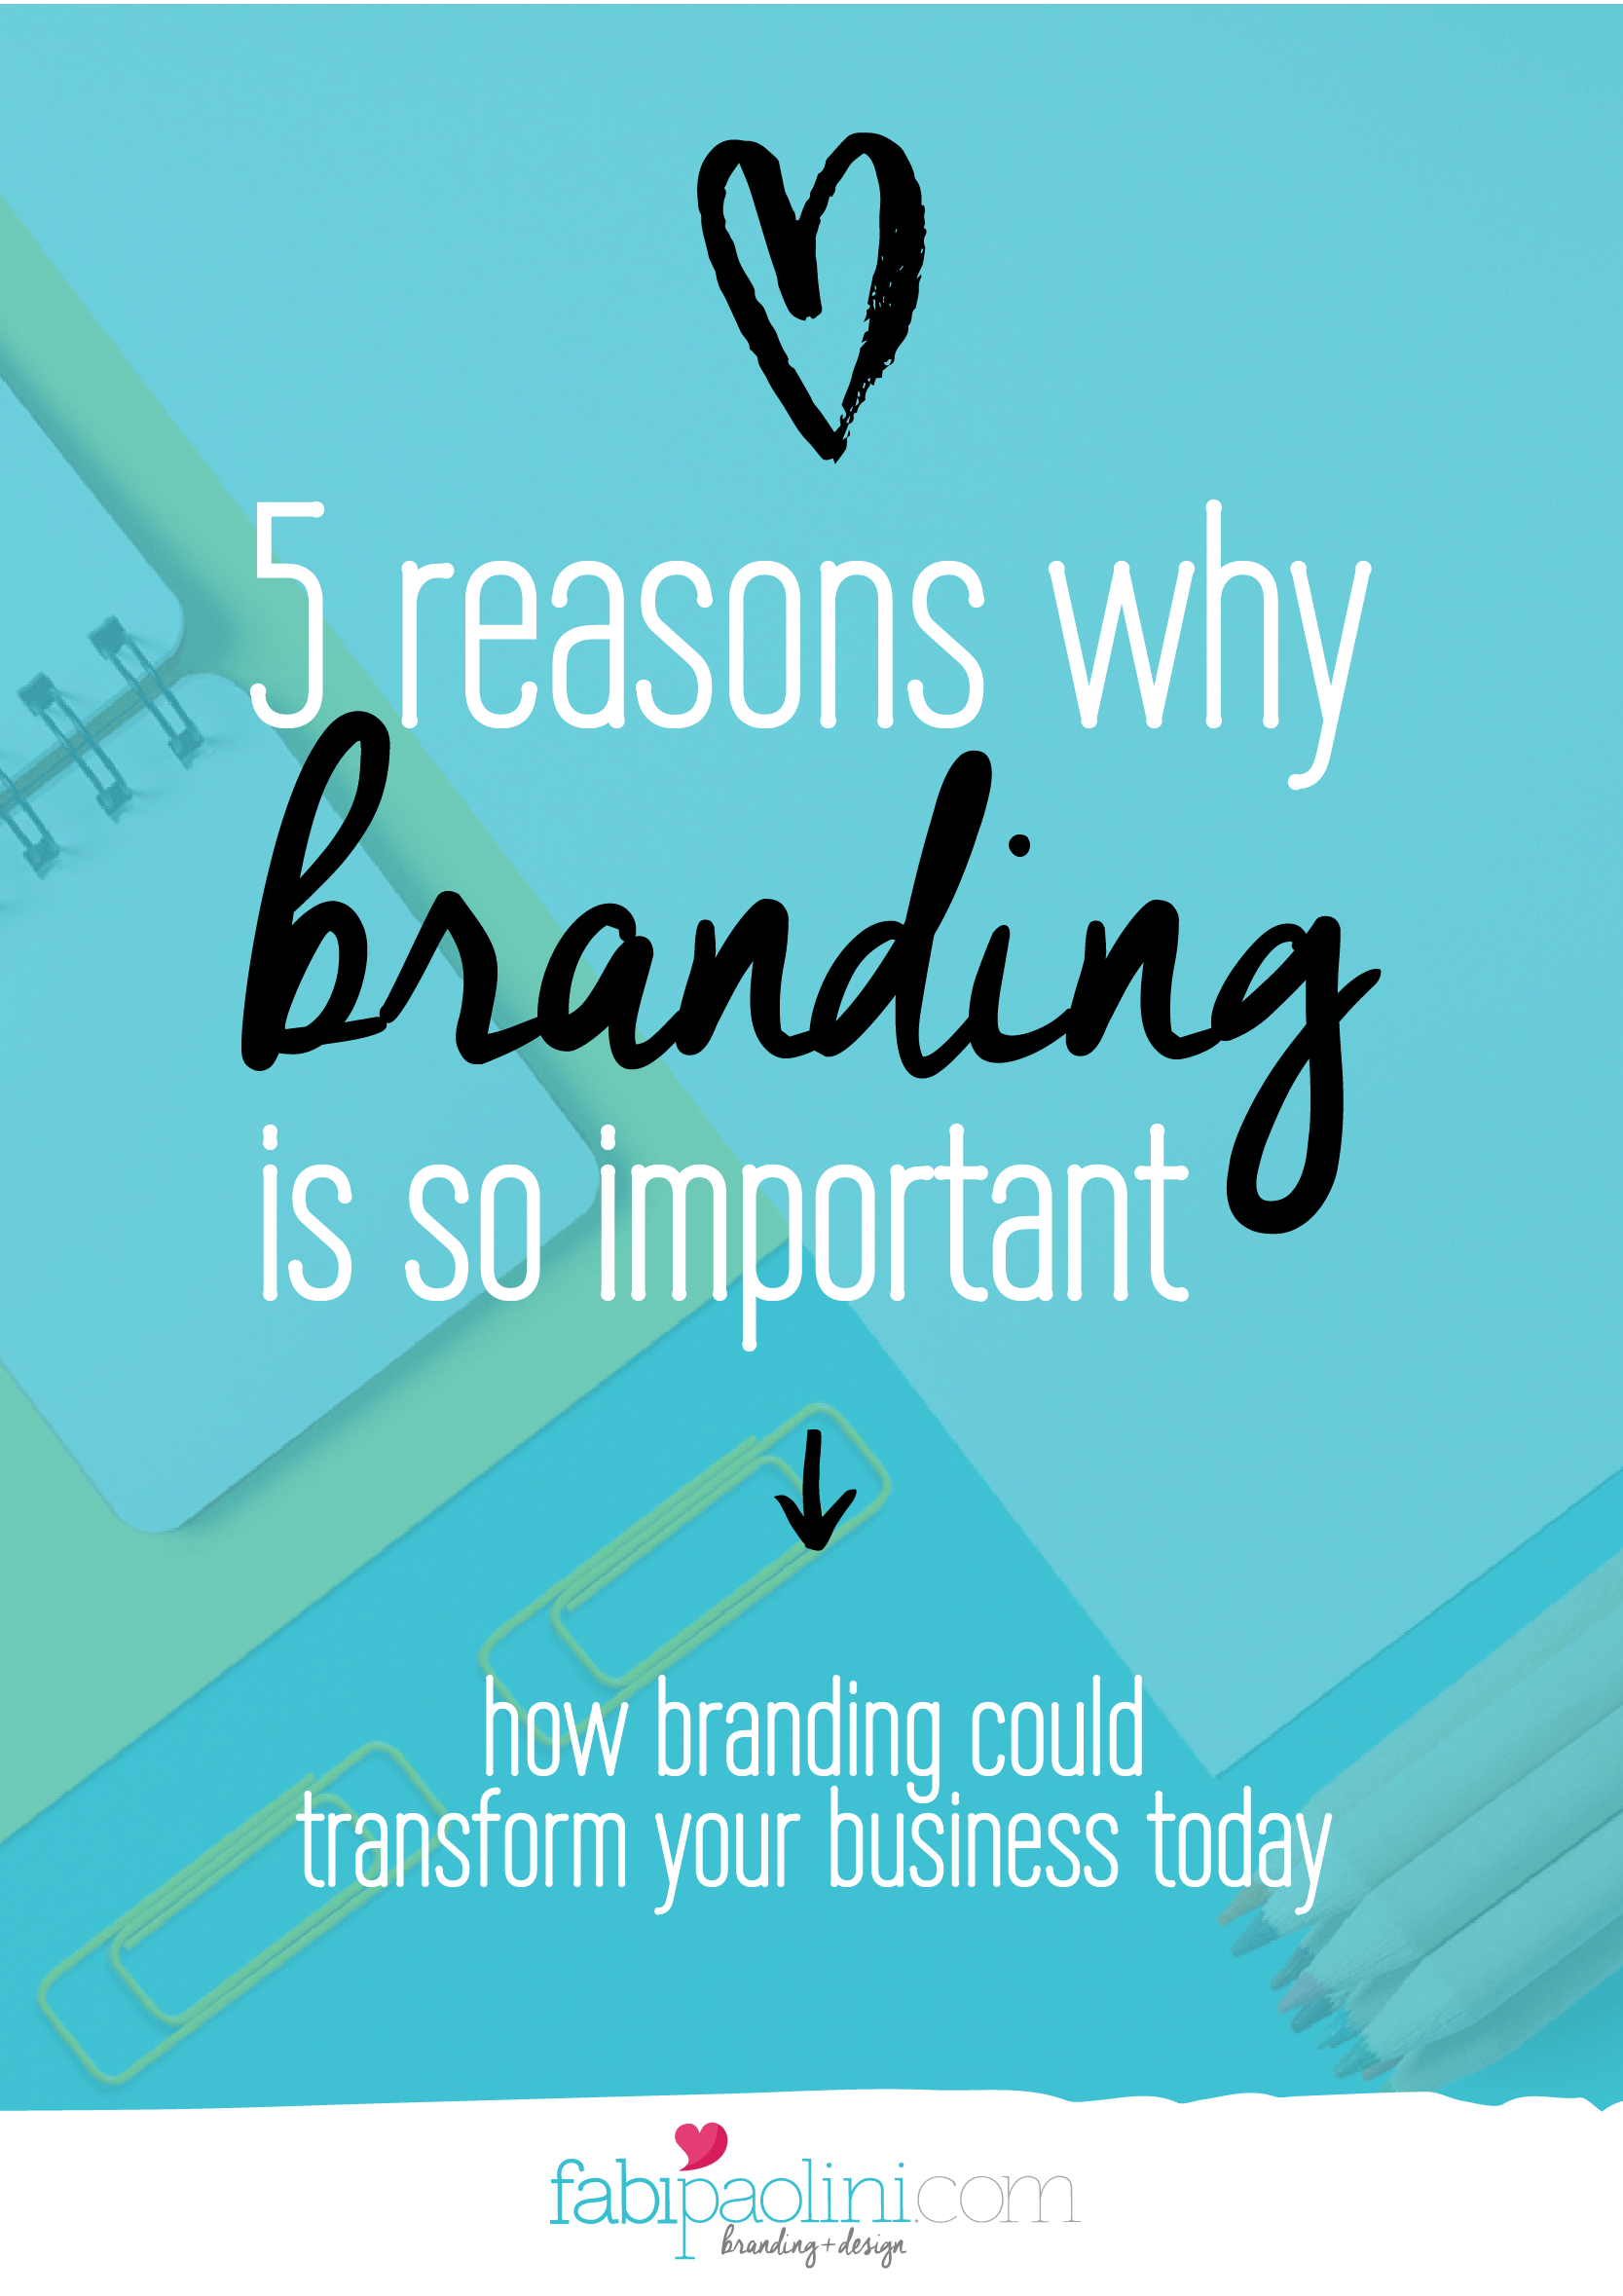 5 reasons why branding is important. How branding could transform your business today. Click to read more!